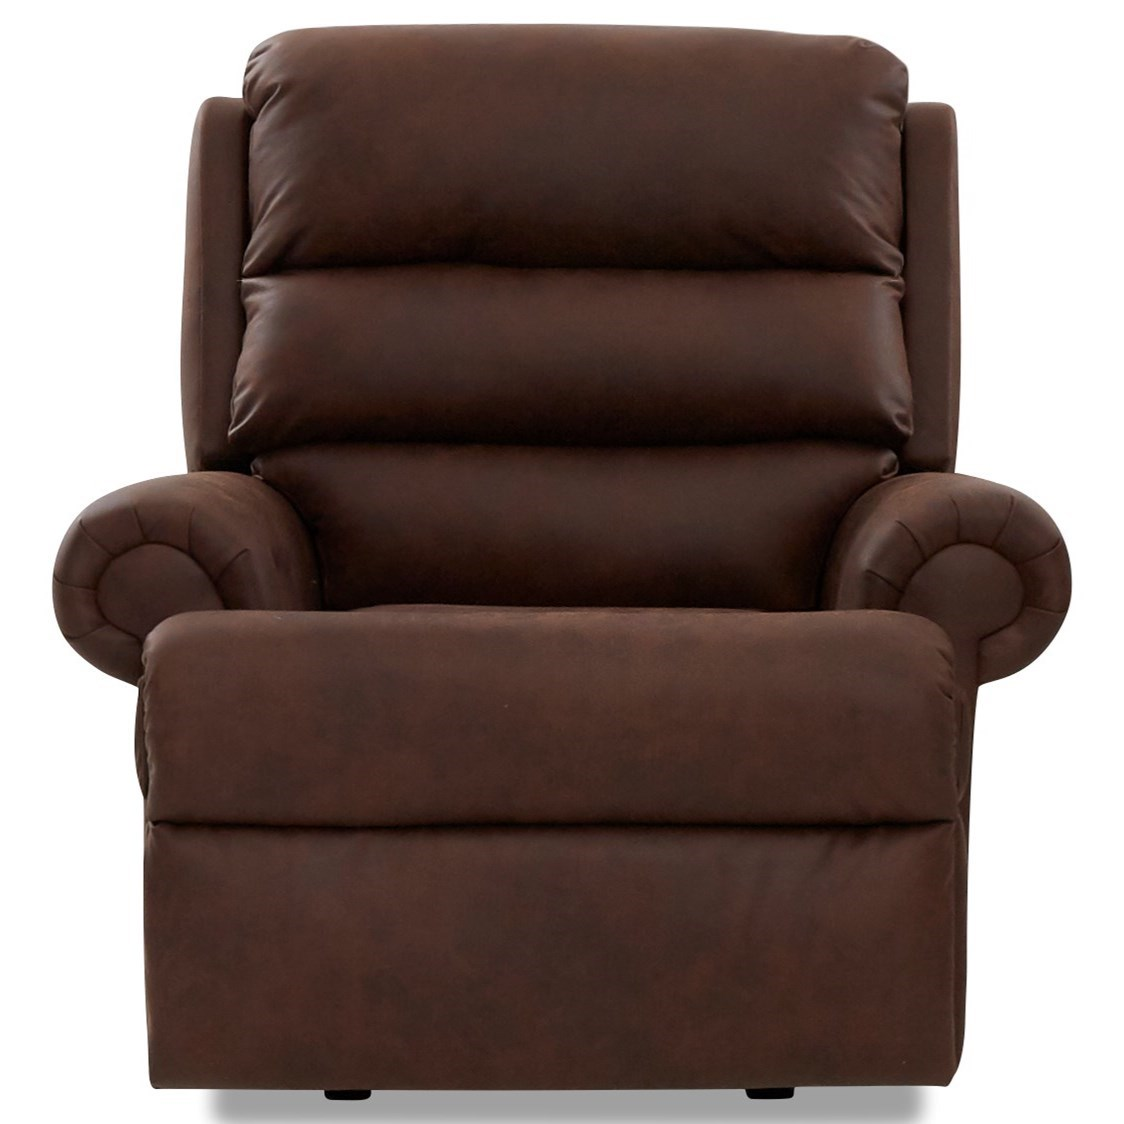 Power Reclining Rocking Chair with Rolled Arms and USB Charging Port